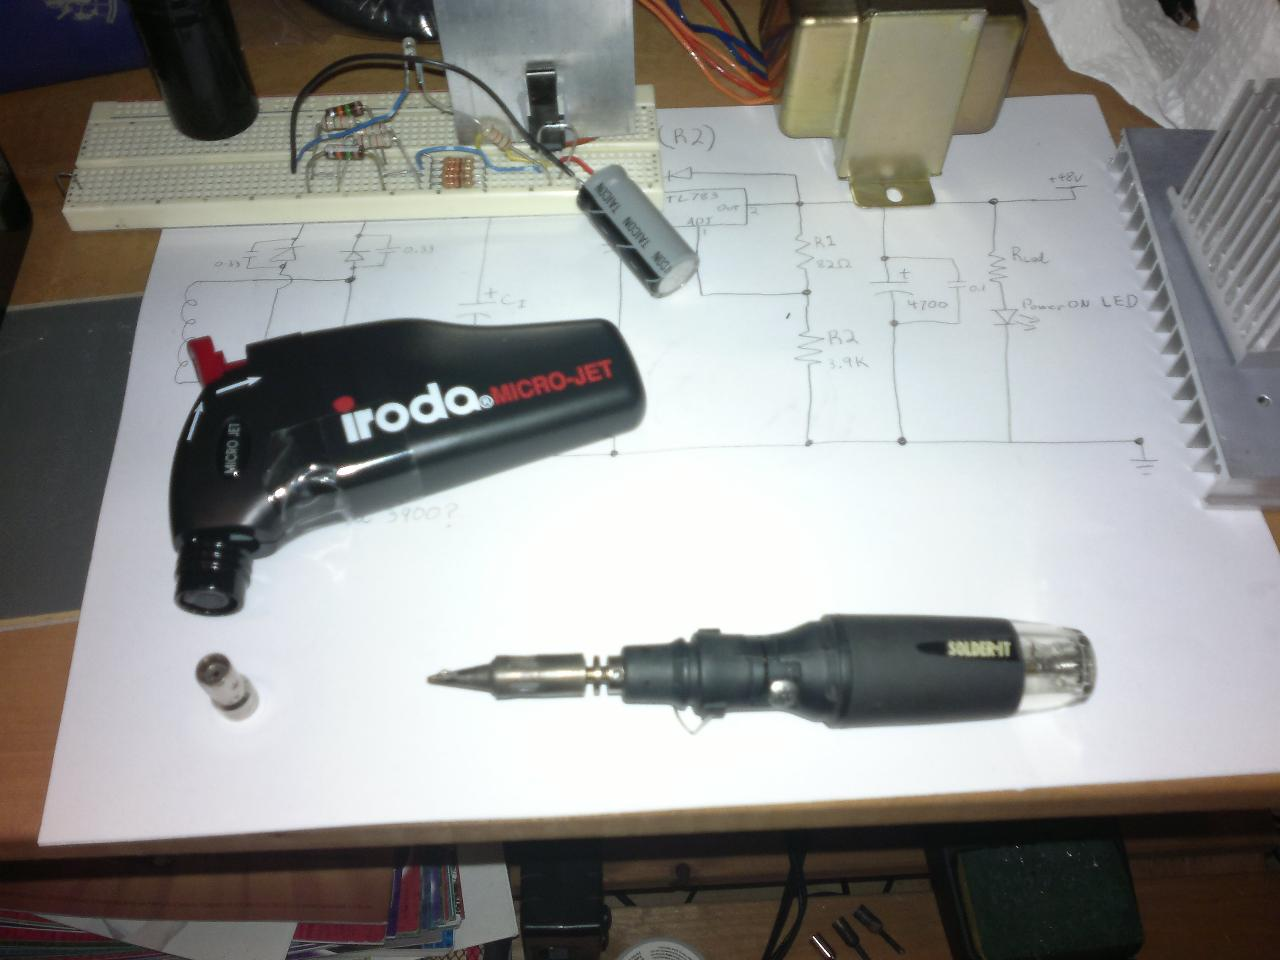 My butane powered tools. A piezoelectric started torch, and a soldering iron.